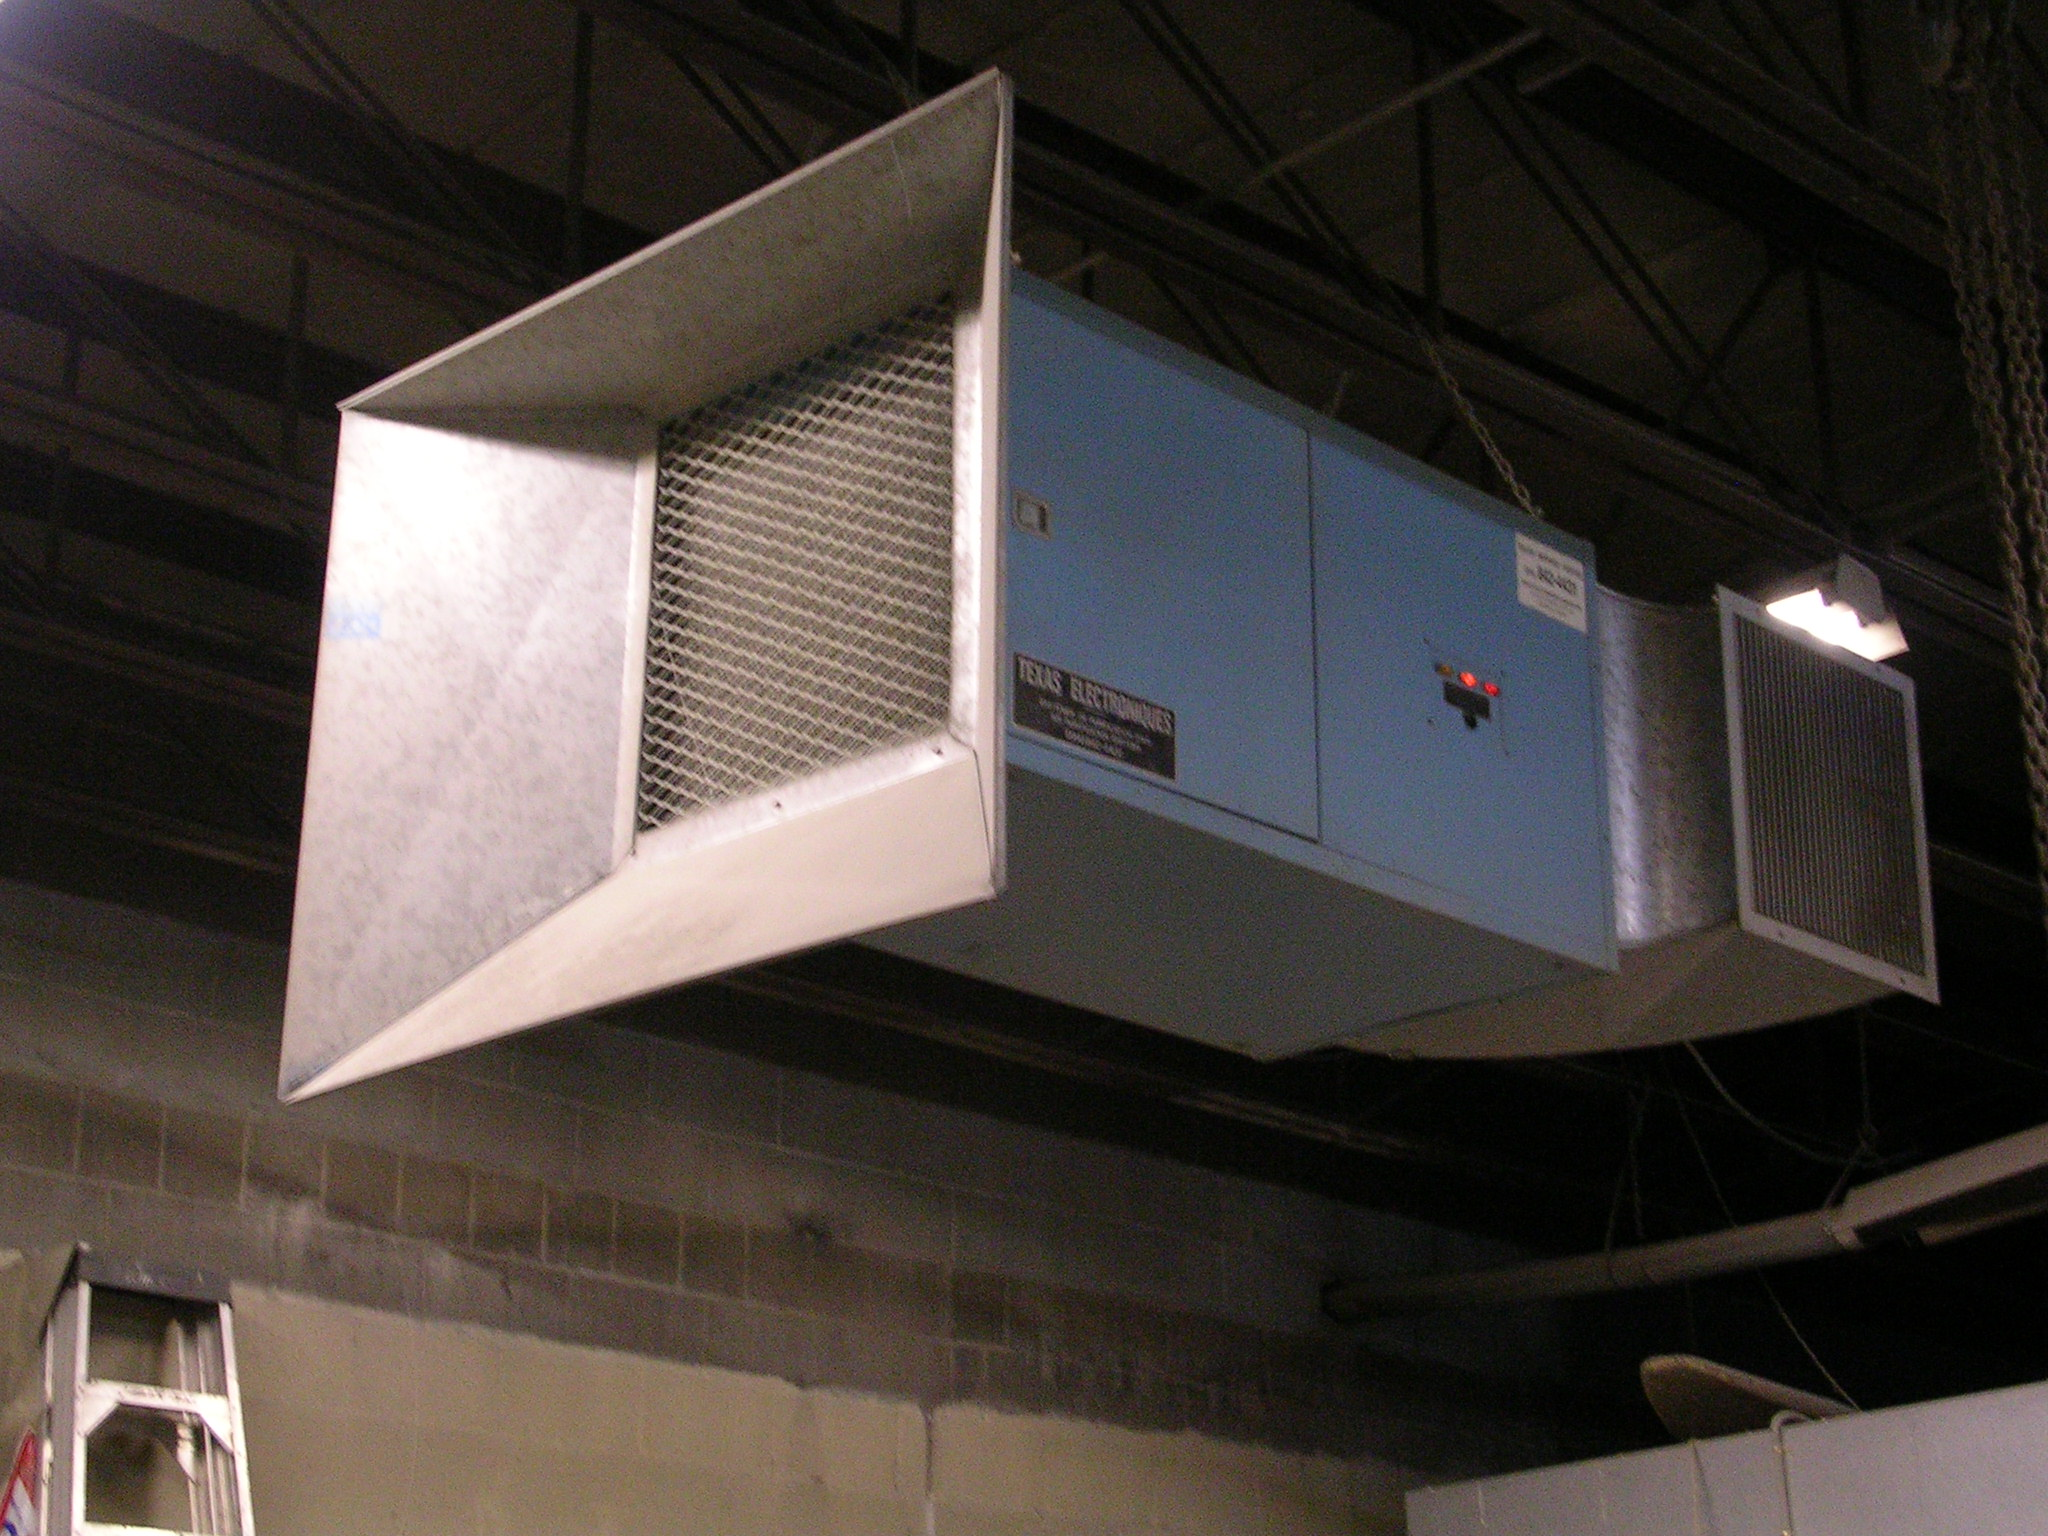 Commercial Air Cleaner Dust : Industrial air cleaner for the control of airborne dust